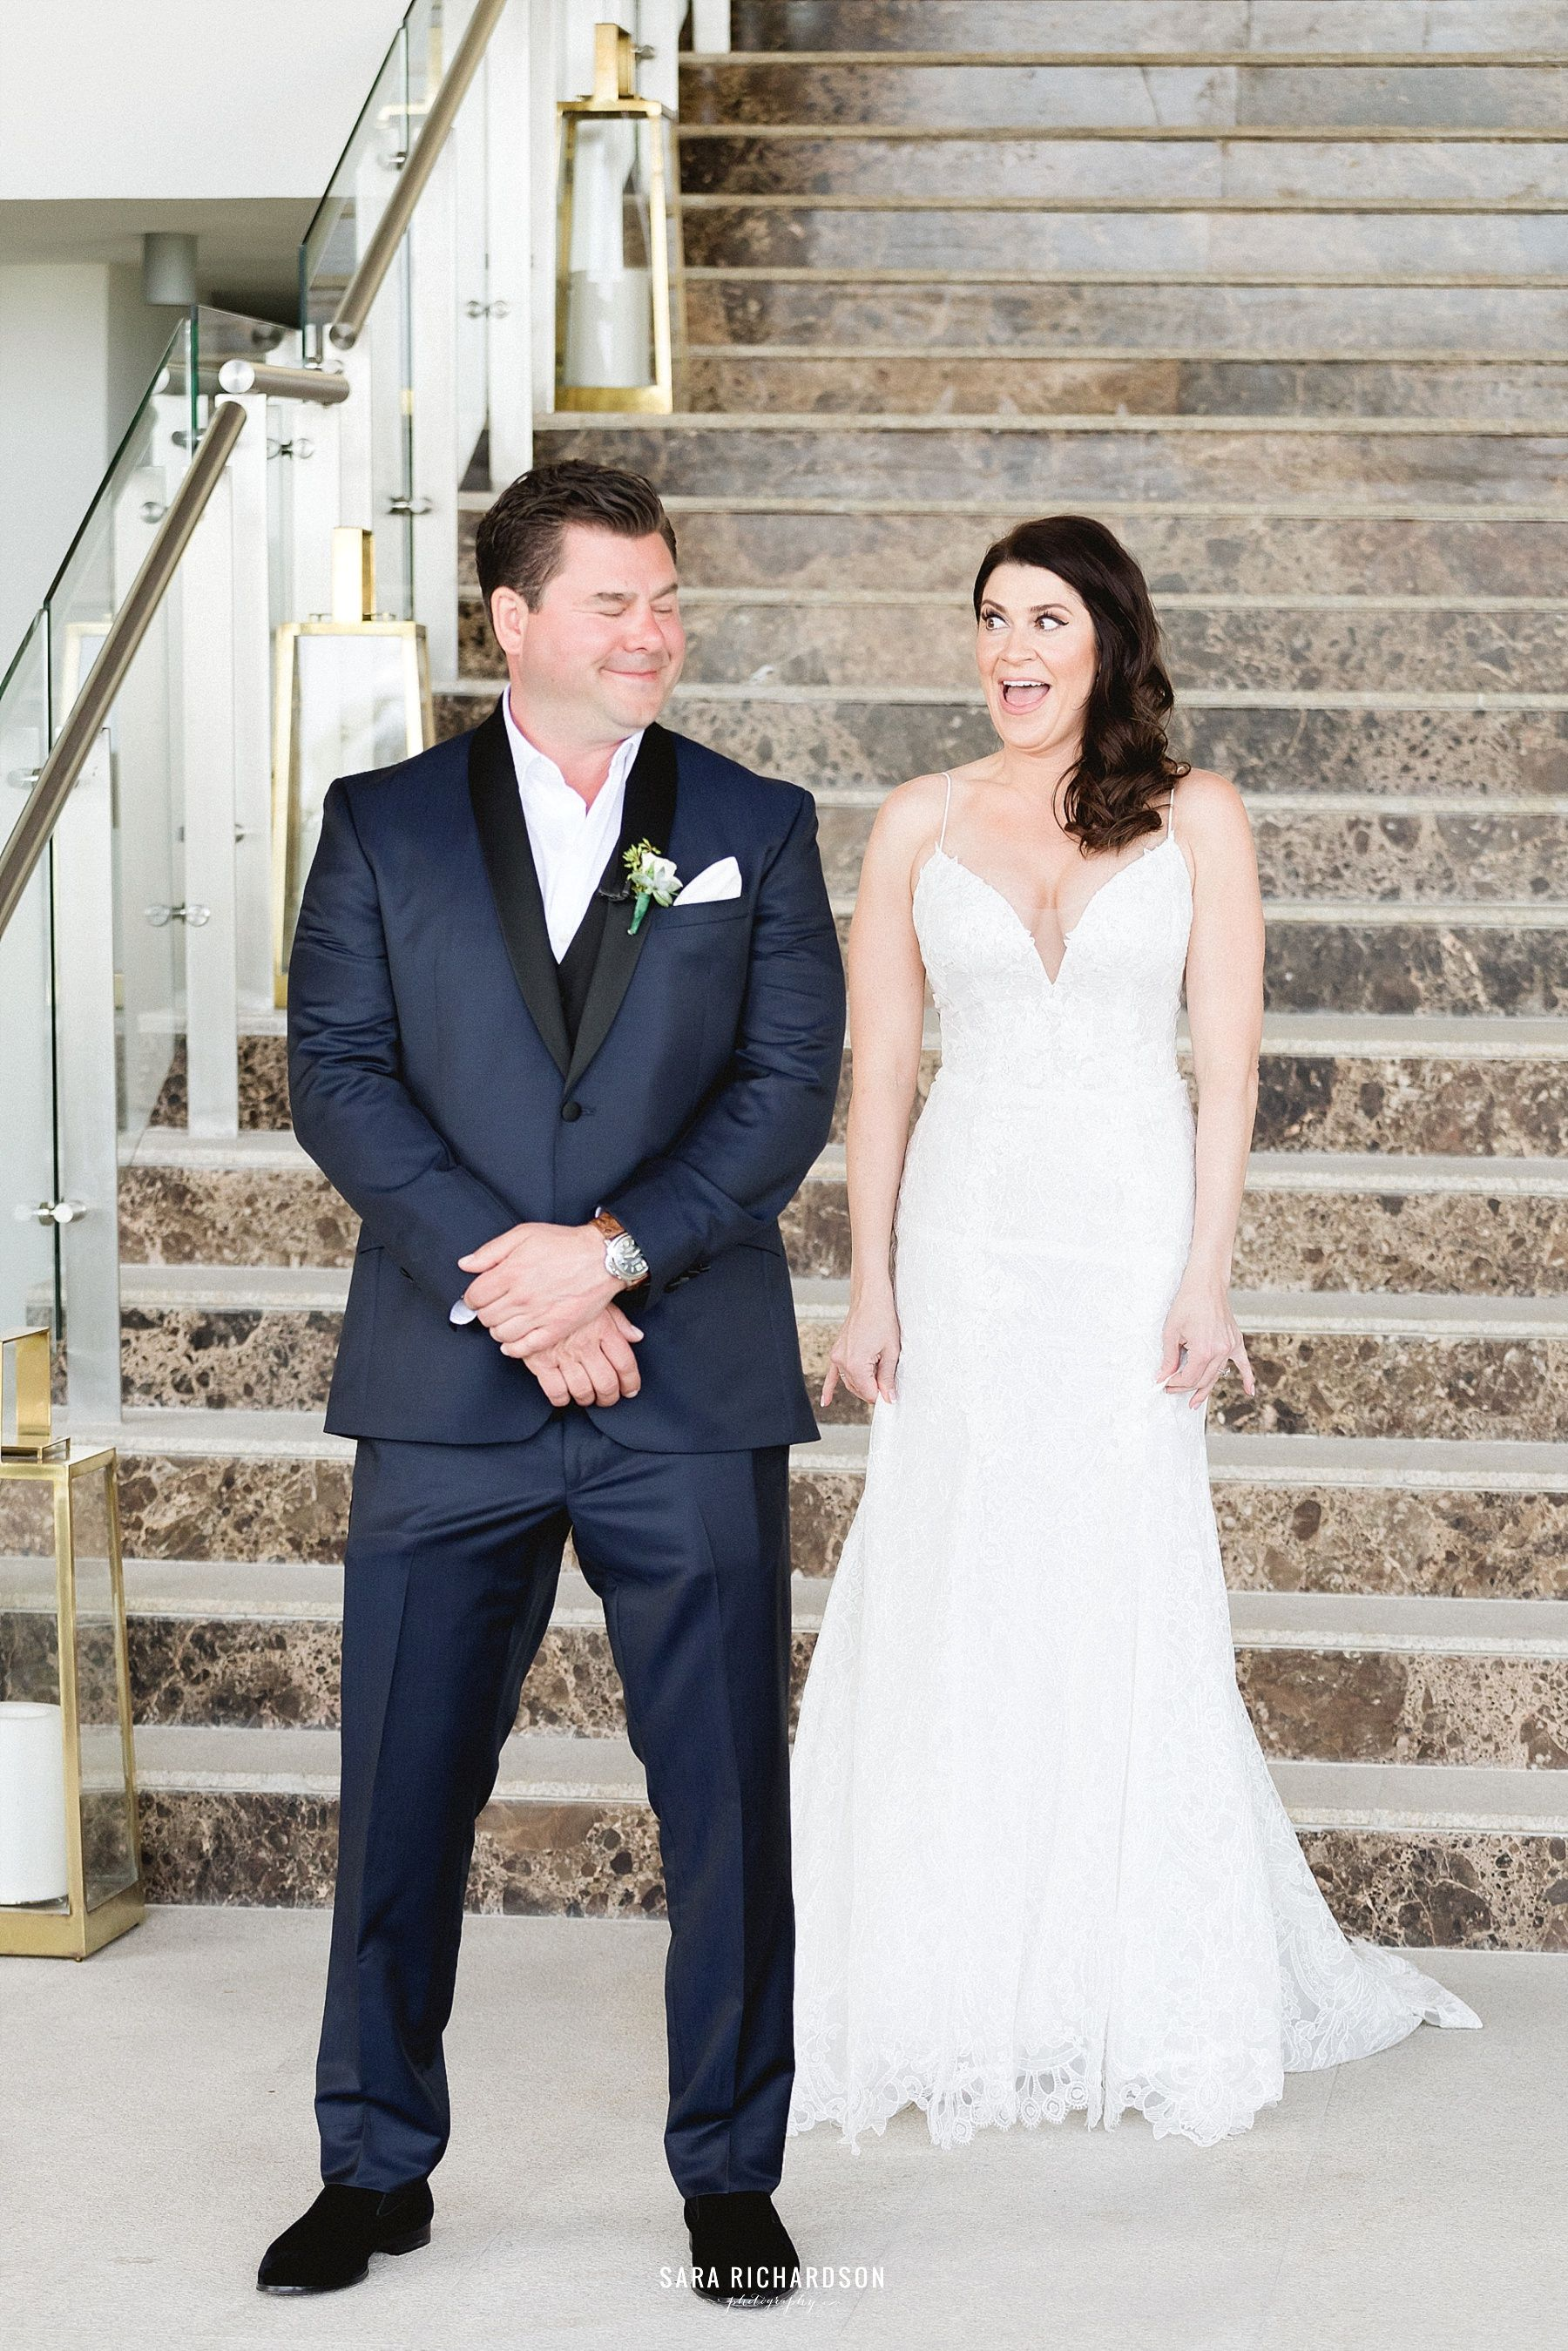 Our Bride could not contain her excitement as she saw her groom for the first time all glammed up. Thank to Bri Berliner who made our Bride look beautiful and went with a light tone for her cheeks and lips, she looks stunning.